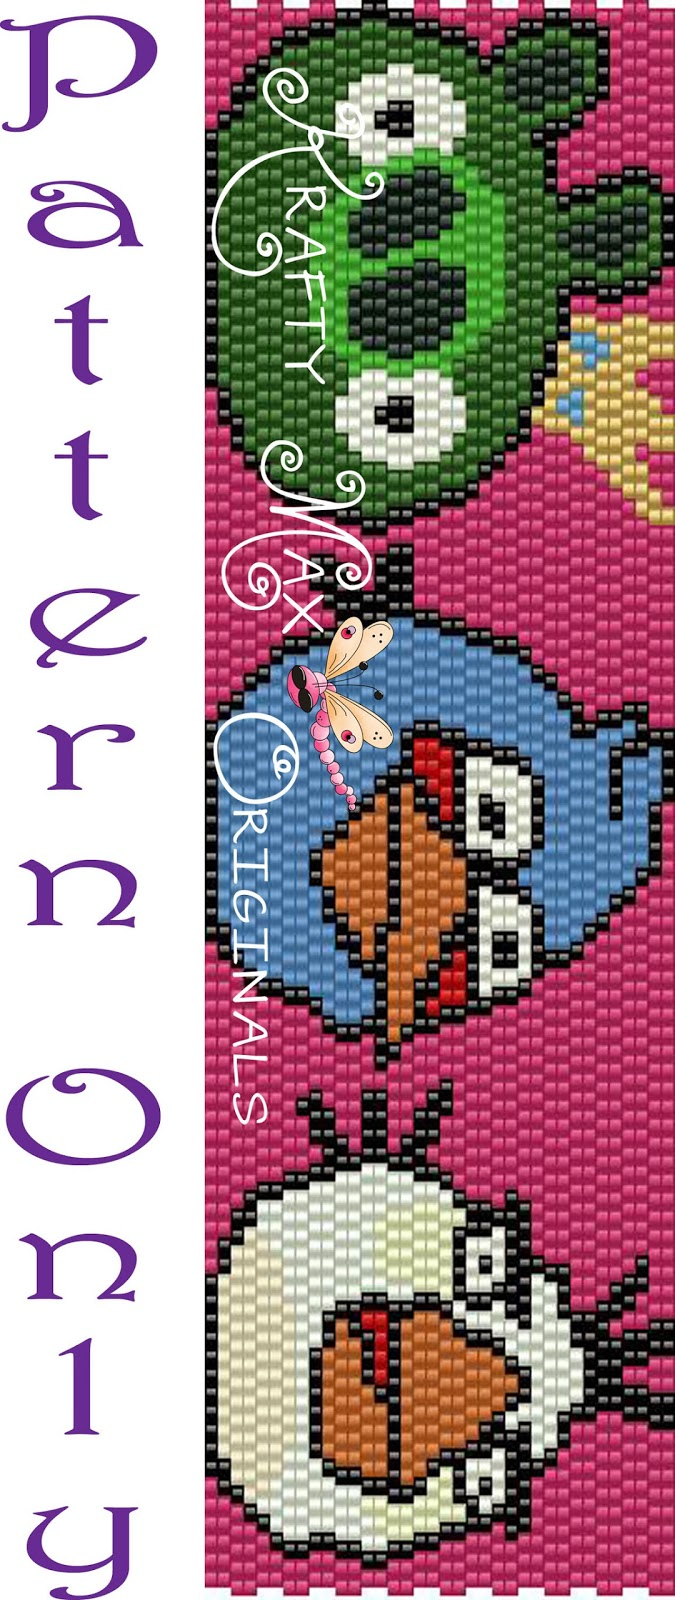 http://www.artfire.com/ext/shop/product_view/KraftyMax/8002100/angry_birds_-pig_blue_and_white_-pattern_only-a_krafty_max_original/design/patterns/jewelry/bracelets